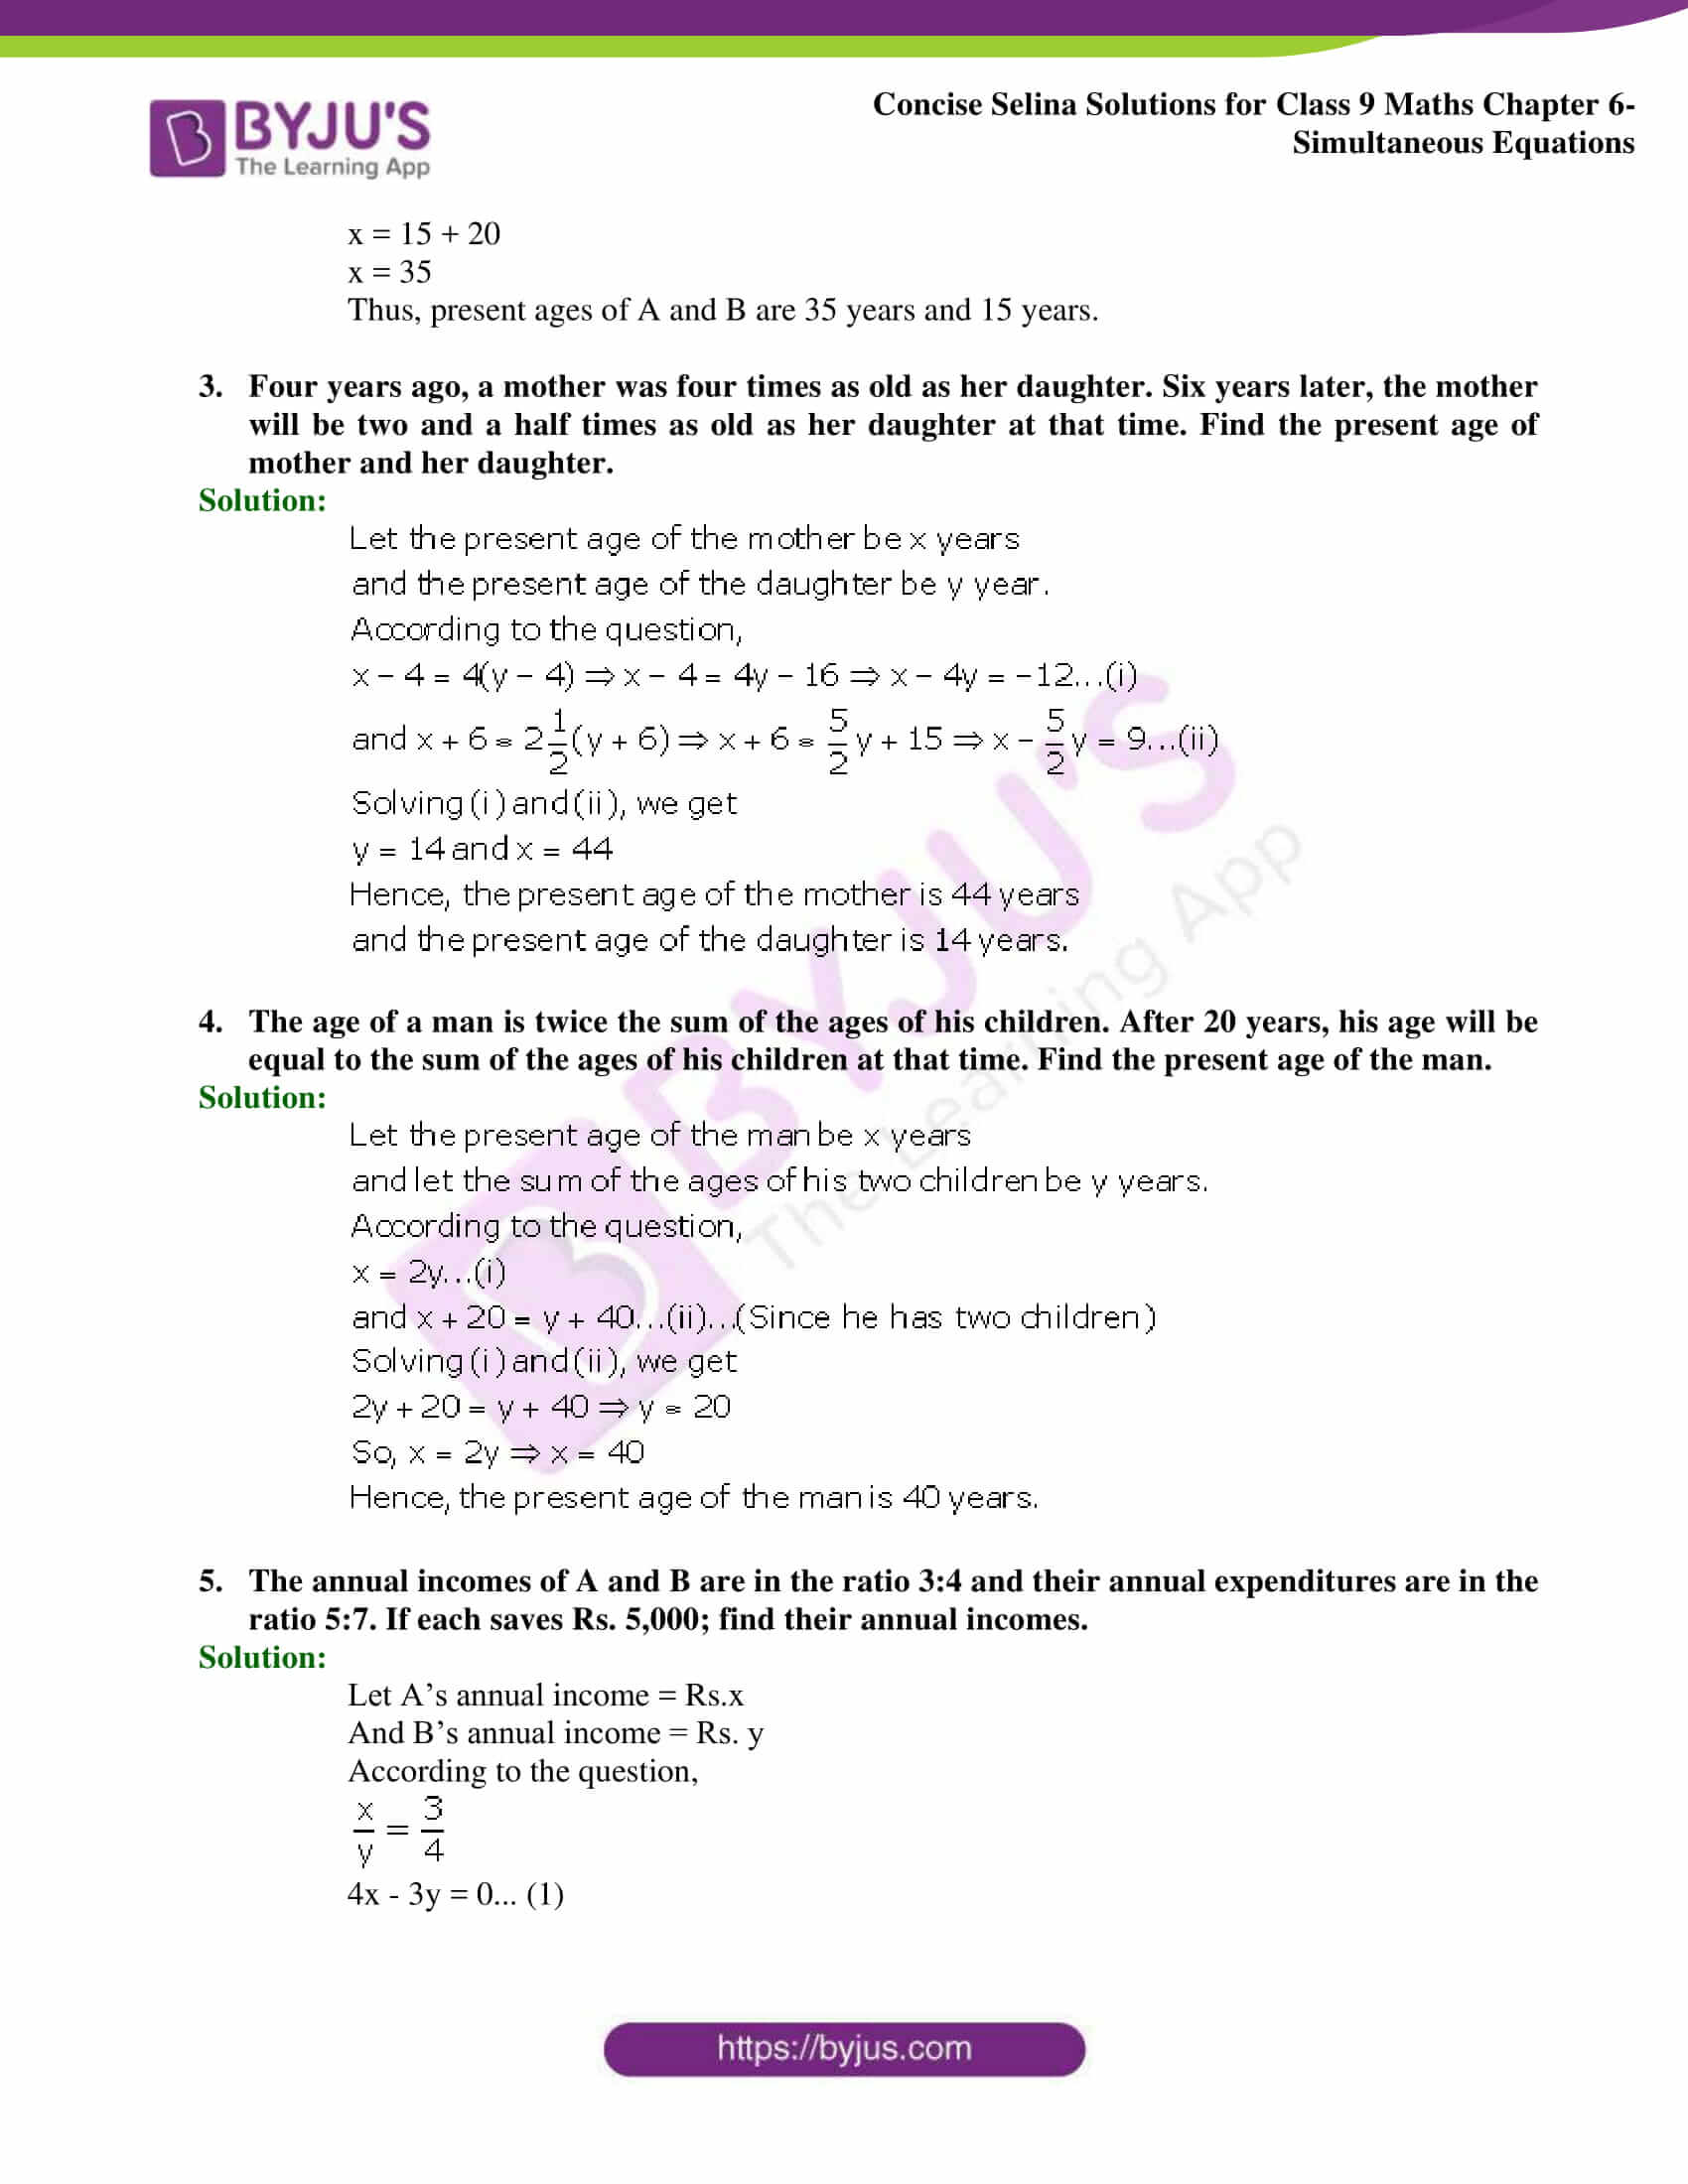 Selina Solutions Class 9 Maths Chapter 6 Simultaneous Equations part 48